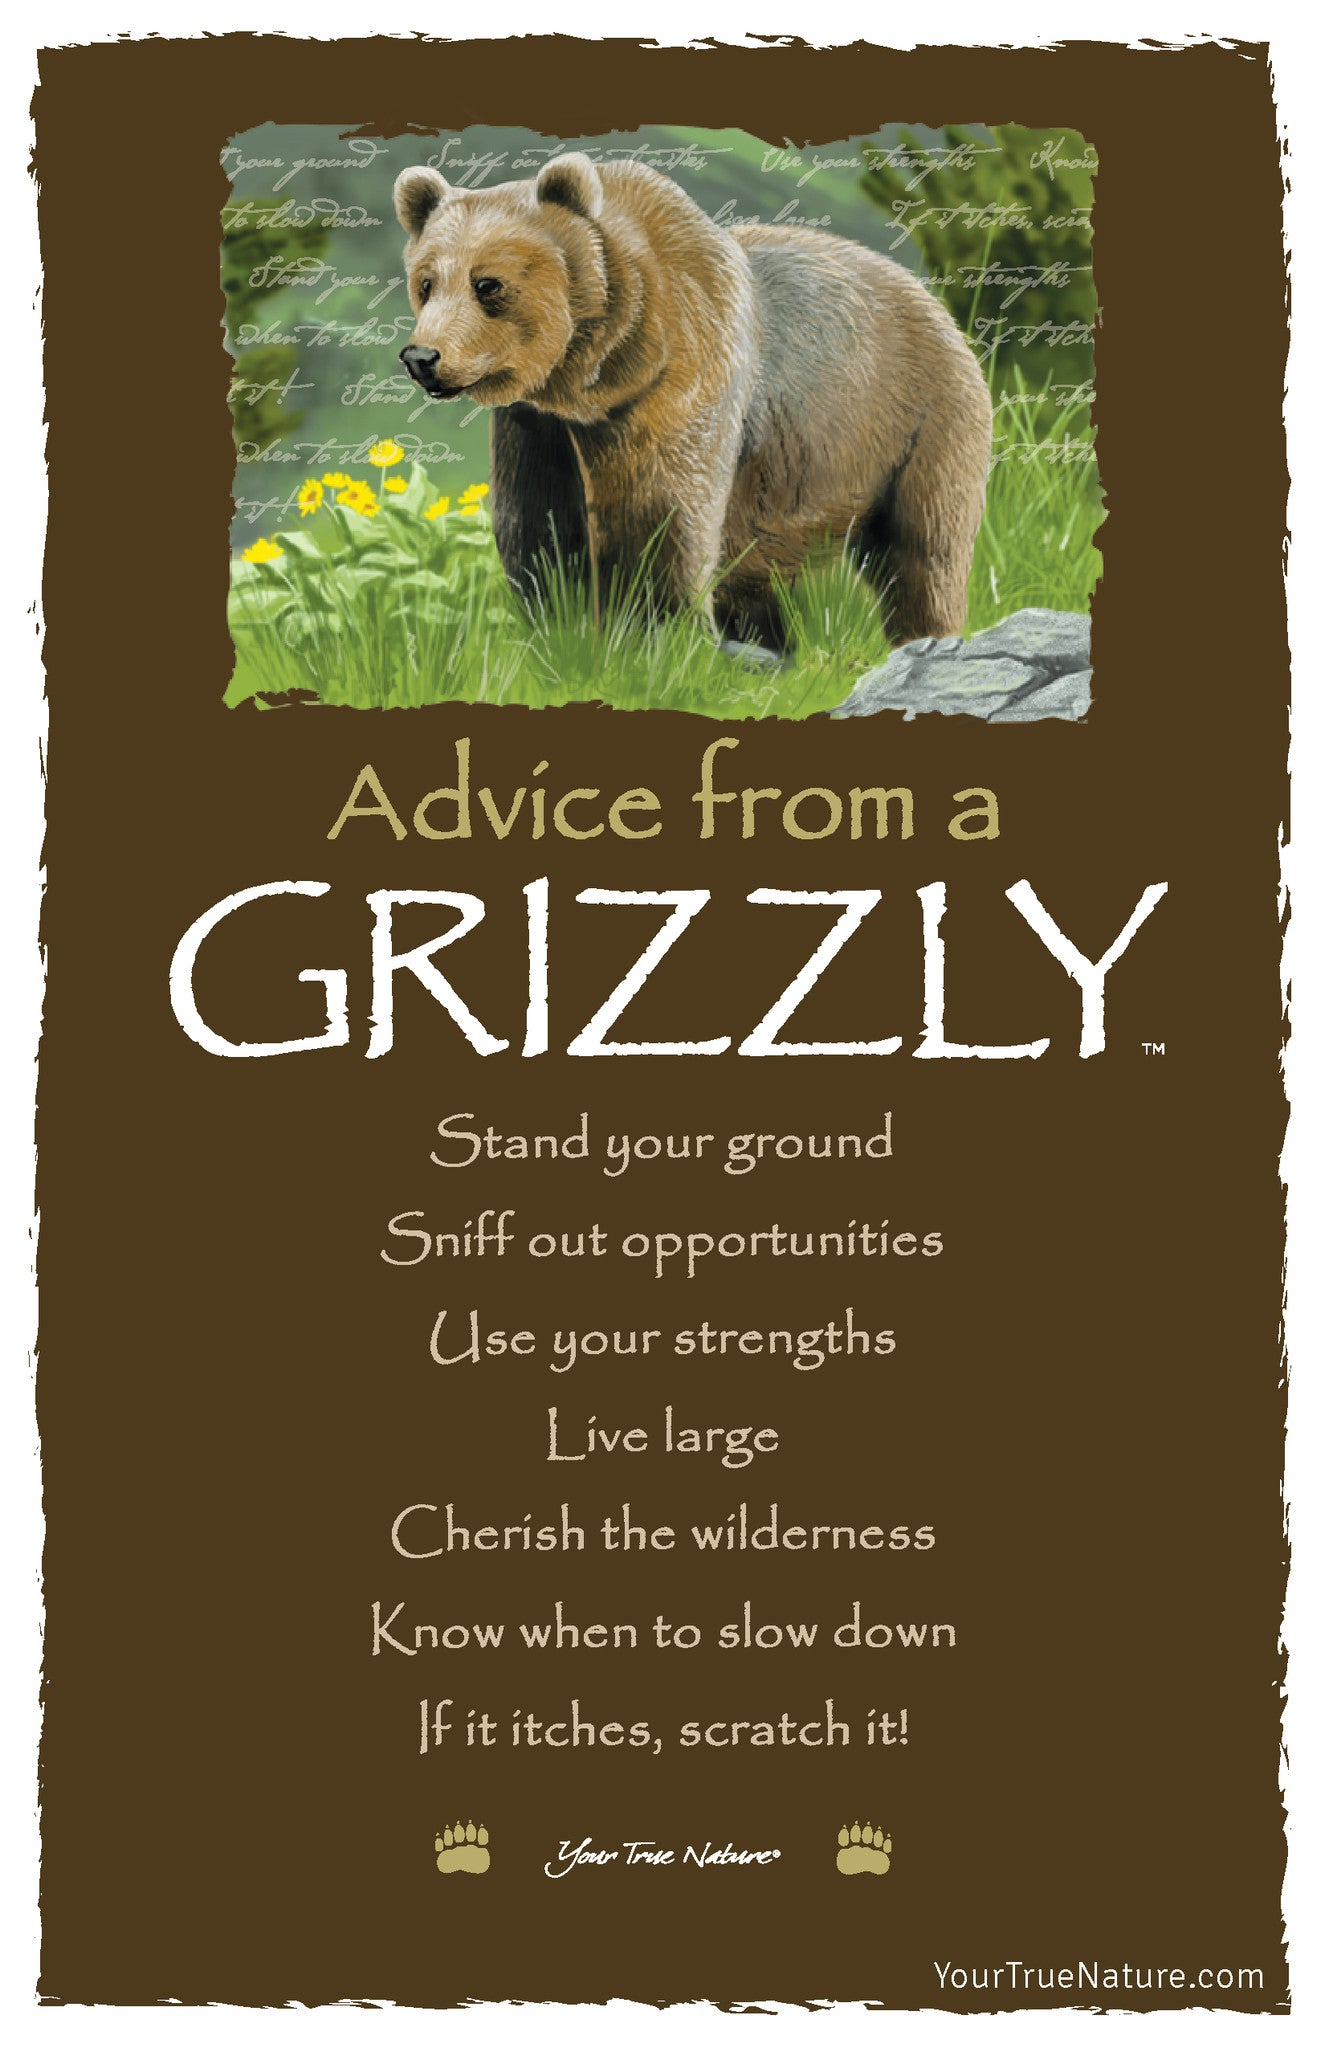 Advice from a Grizzly Frameable Art Card